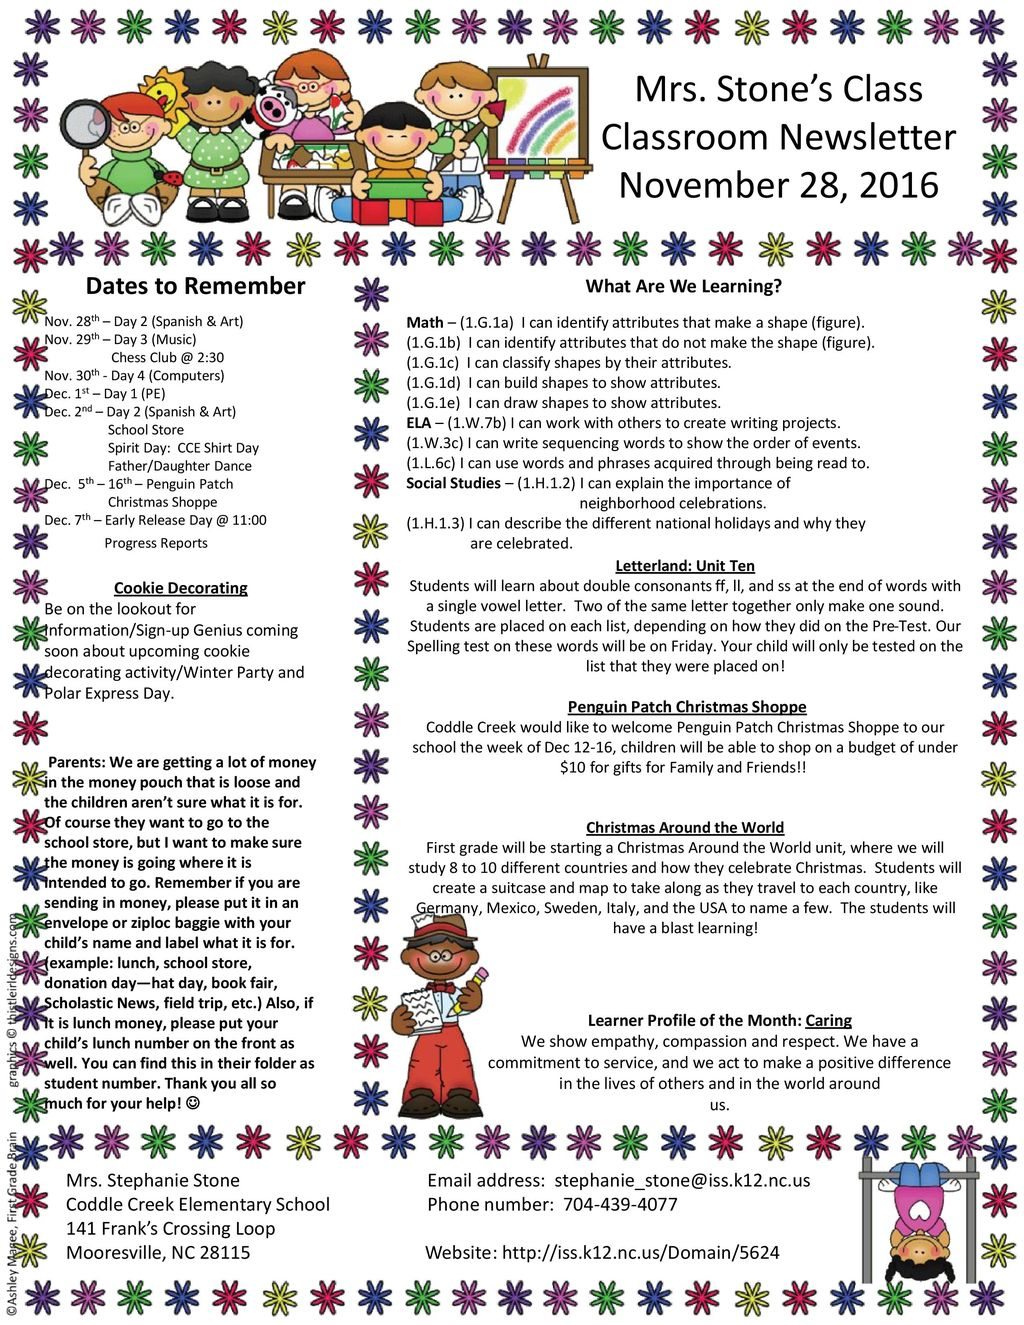 Christmas Around The World Learner Profile Of The Month Caring